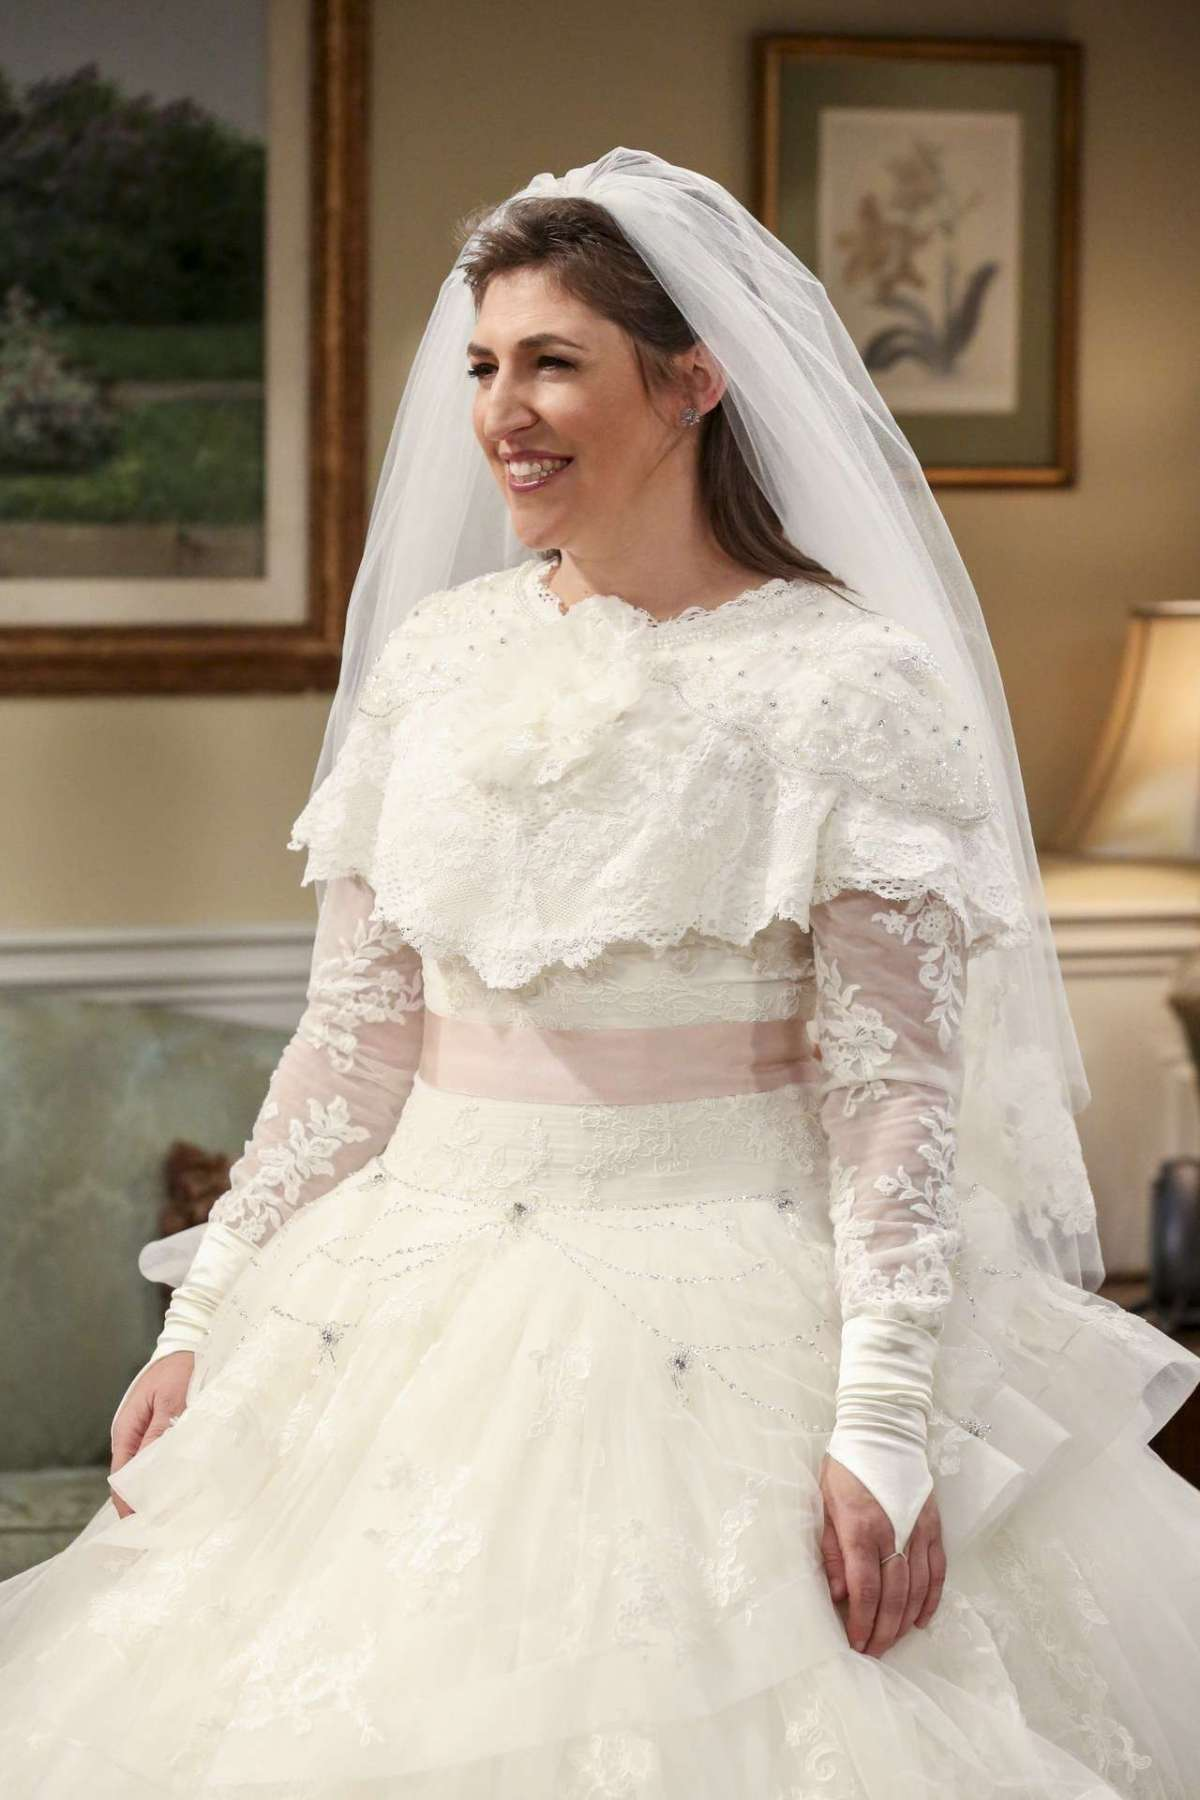 L'abito da sposa di Amy in The Big Bang Theory, dettaglio